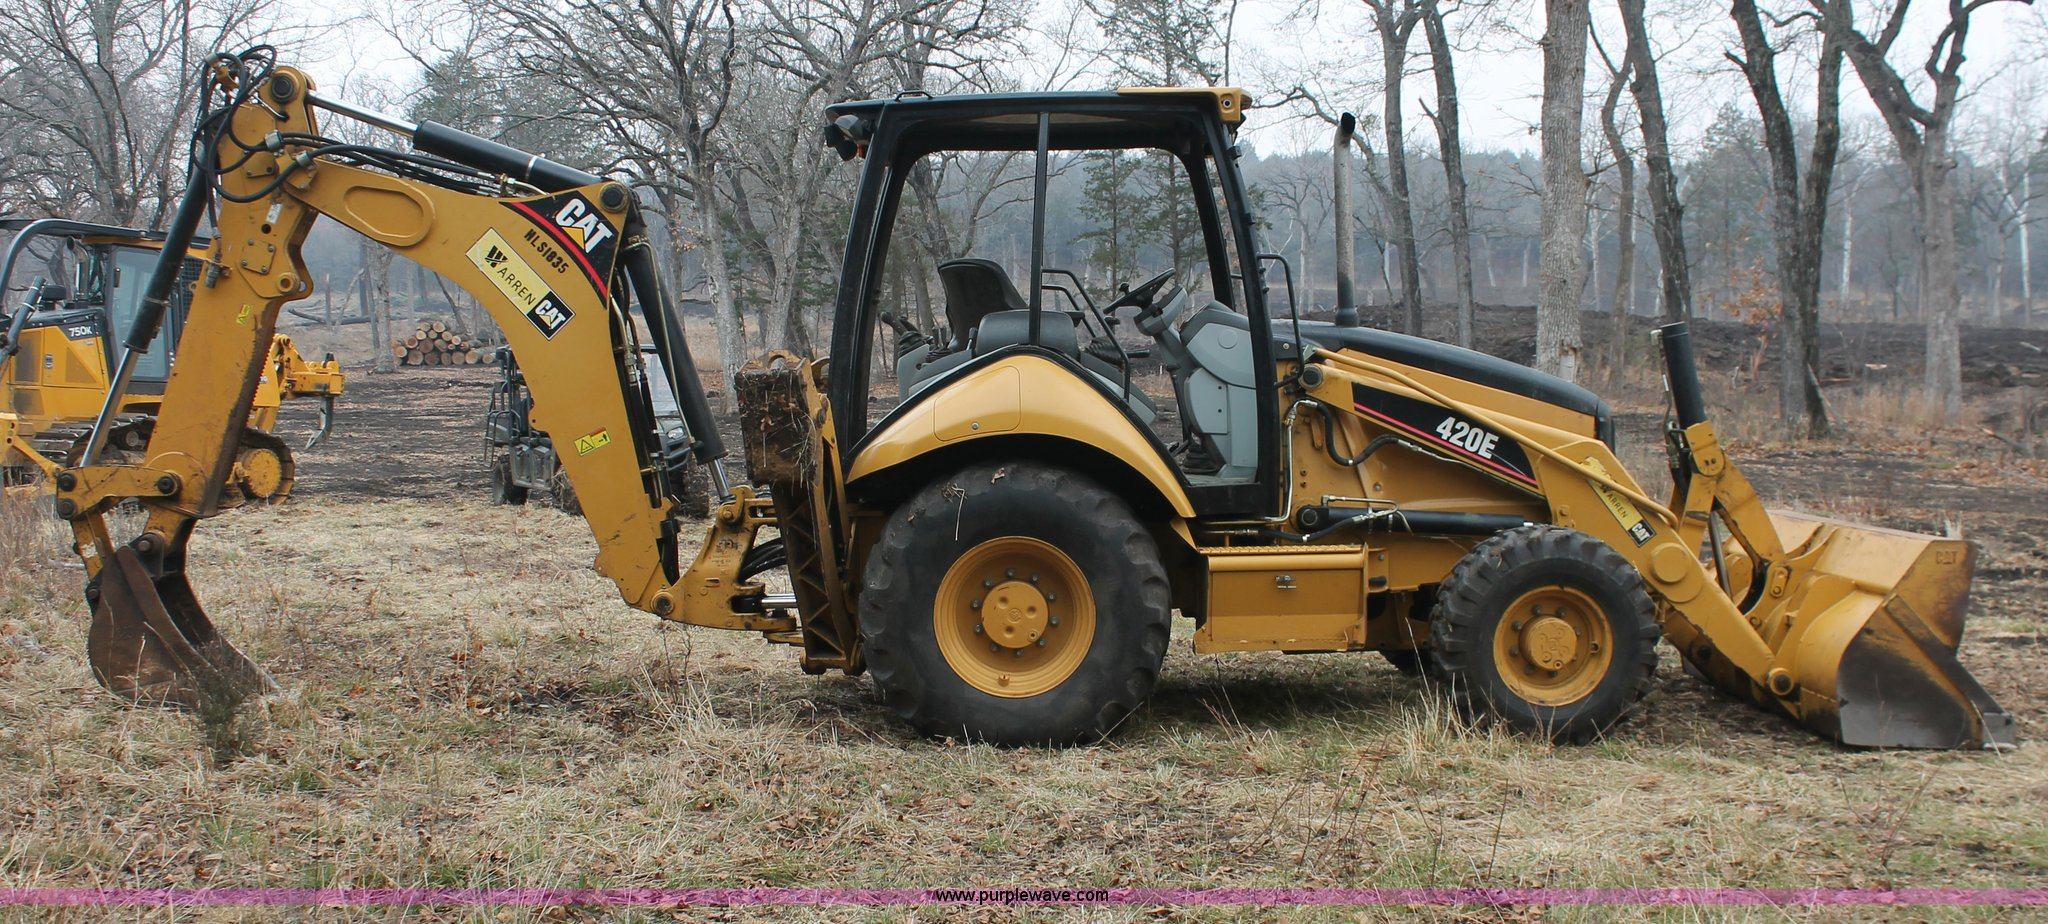 2007 Caterpillar 420E backhoe | Item H8403 | SOLD! March 27